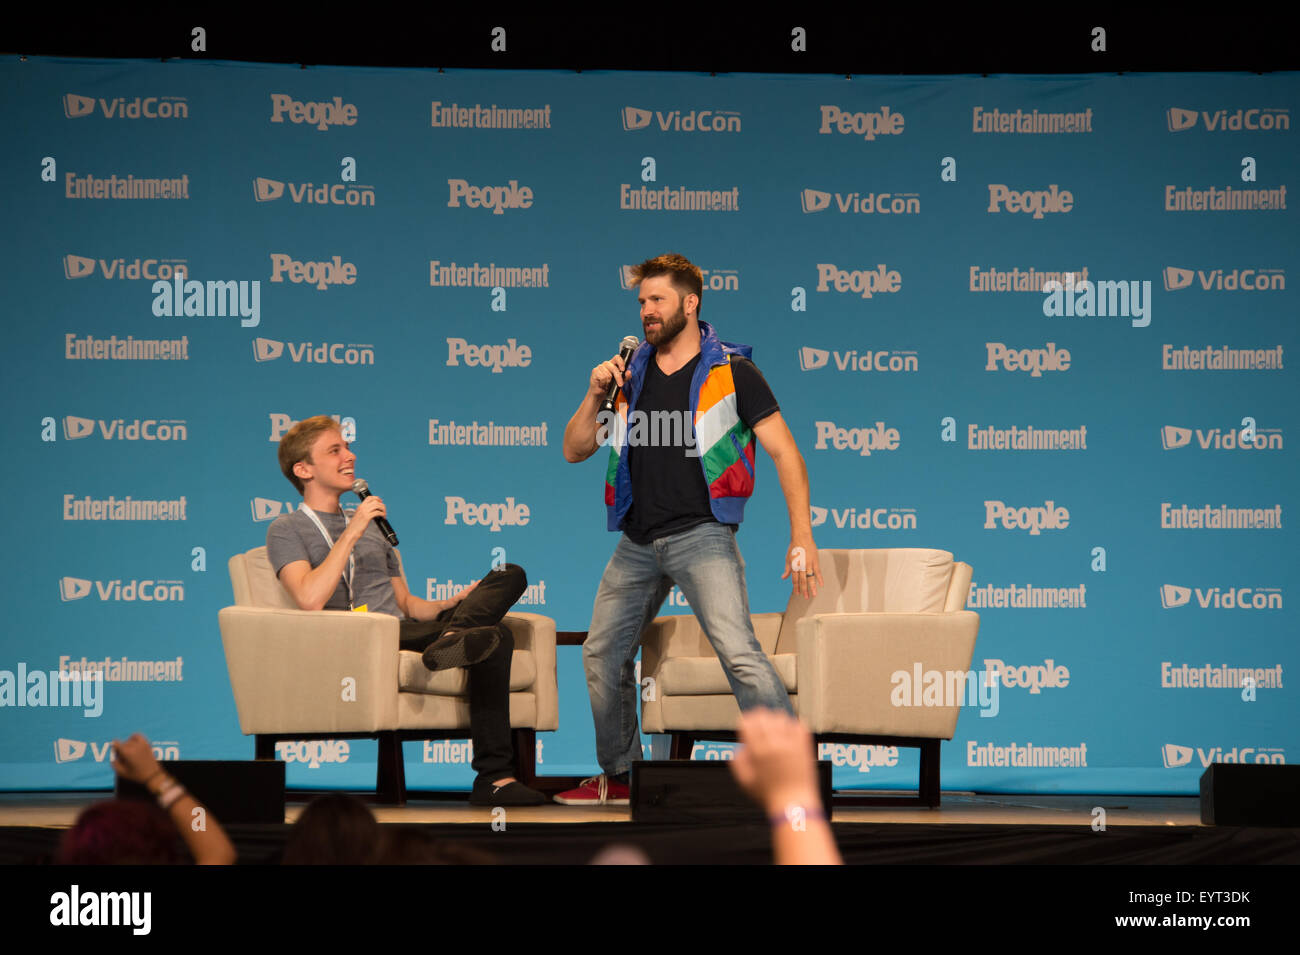 anaheim ca people magazine s joe bereta r interviews anaheim ca 23 people magazine s joe bereta r interviews online celebrity jon cozart at the 6th annual vidcon conferen